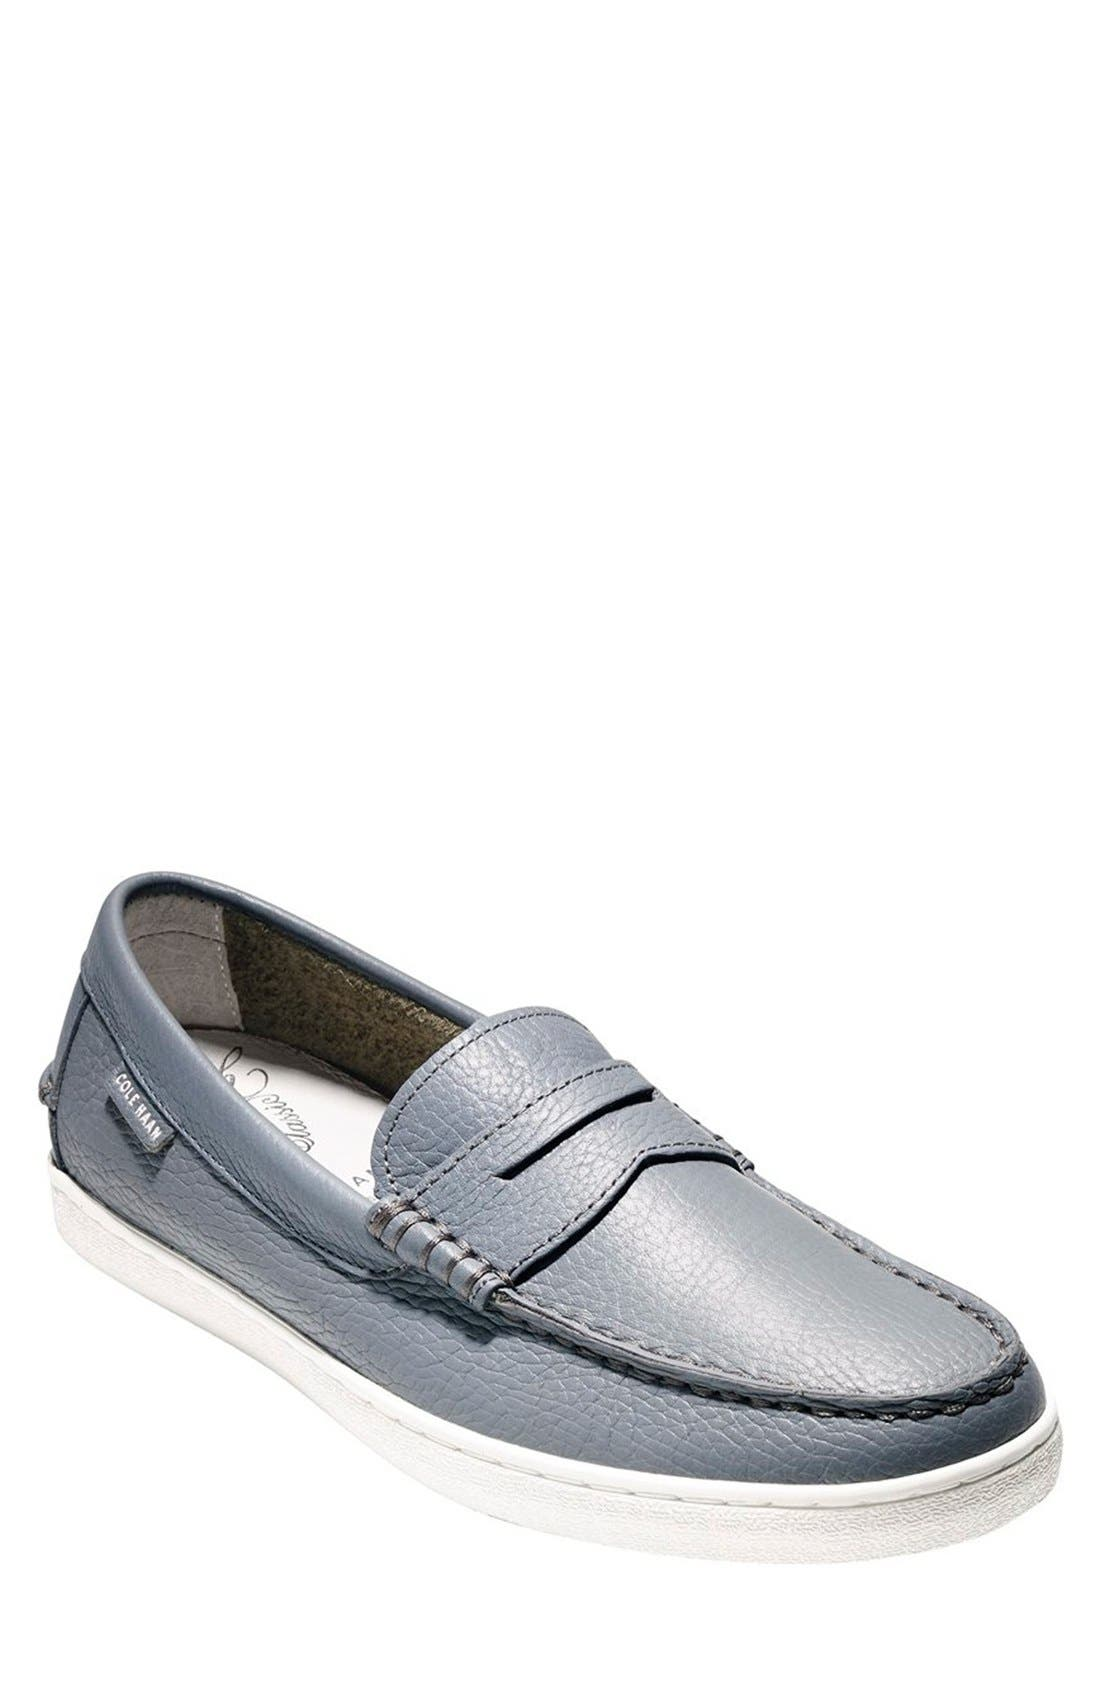 'Pinch' Penny Loafer,                             Main thumbnail 1, color,                             Grey Leather/ White